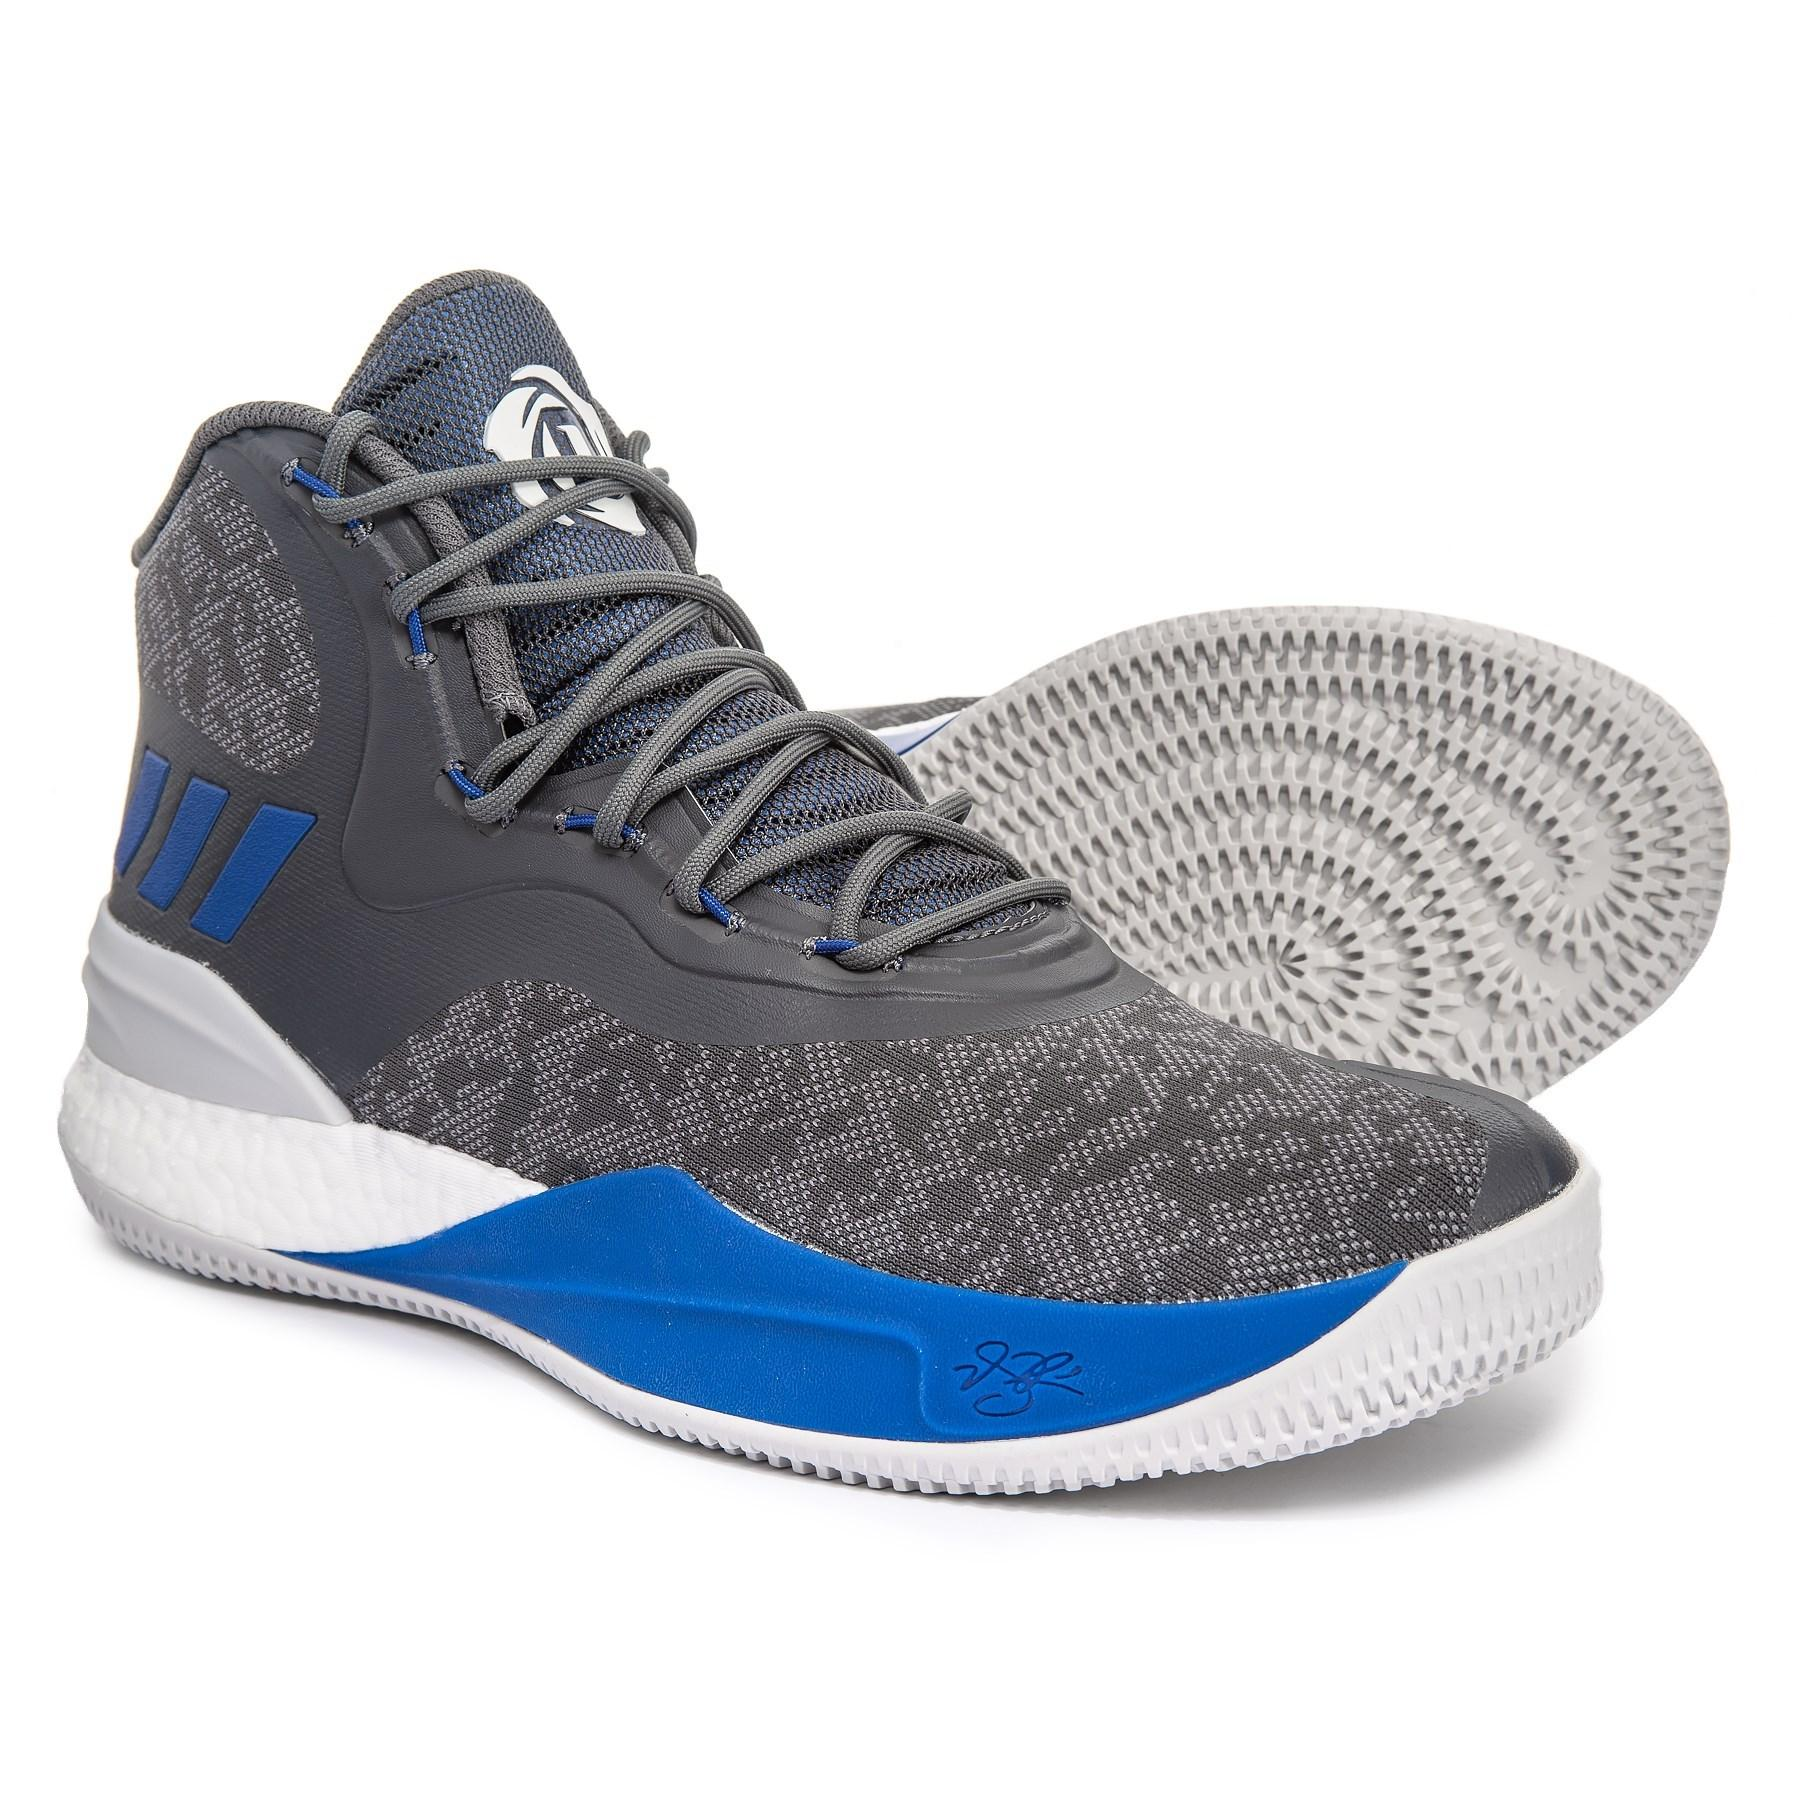 404ecabe5141 Lyst - adidas Derrick Rose 8 Basketball Shoes (for Men) in Gray for Men